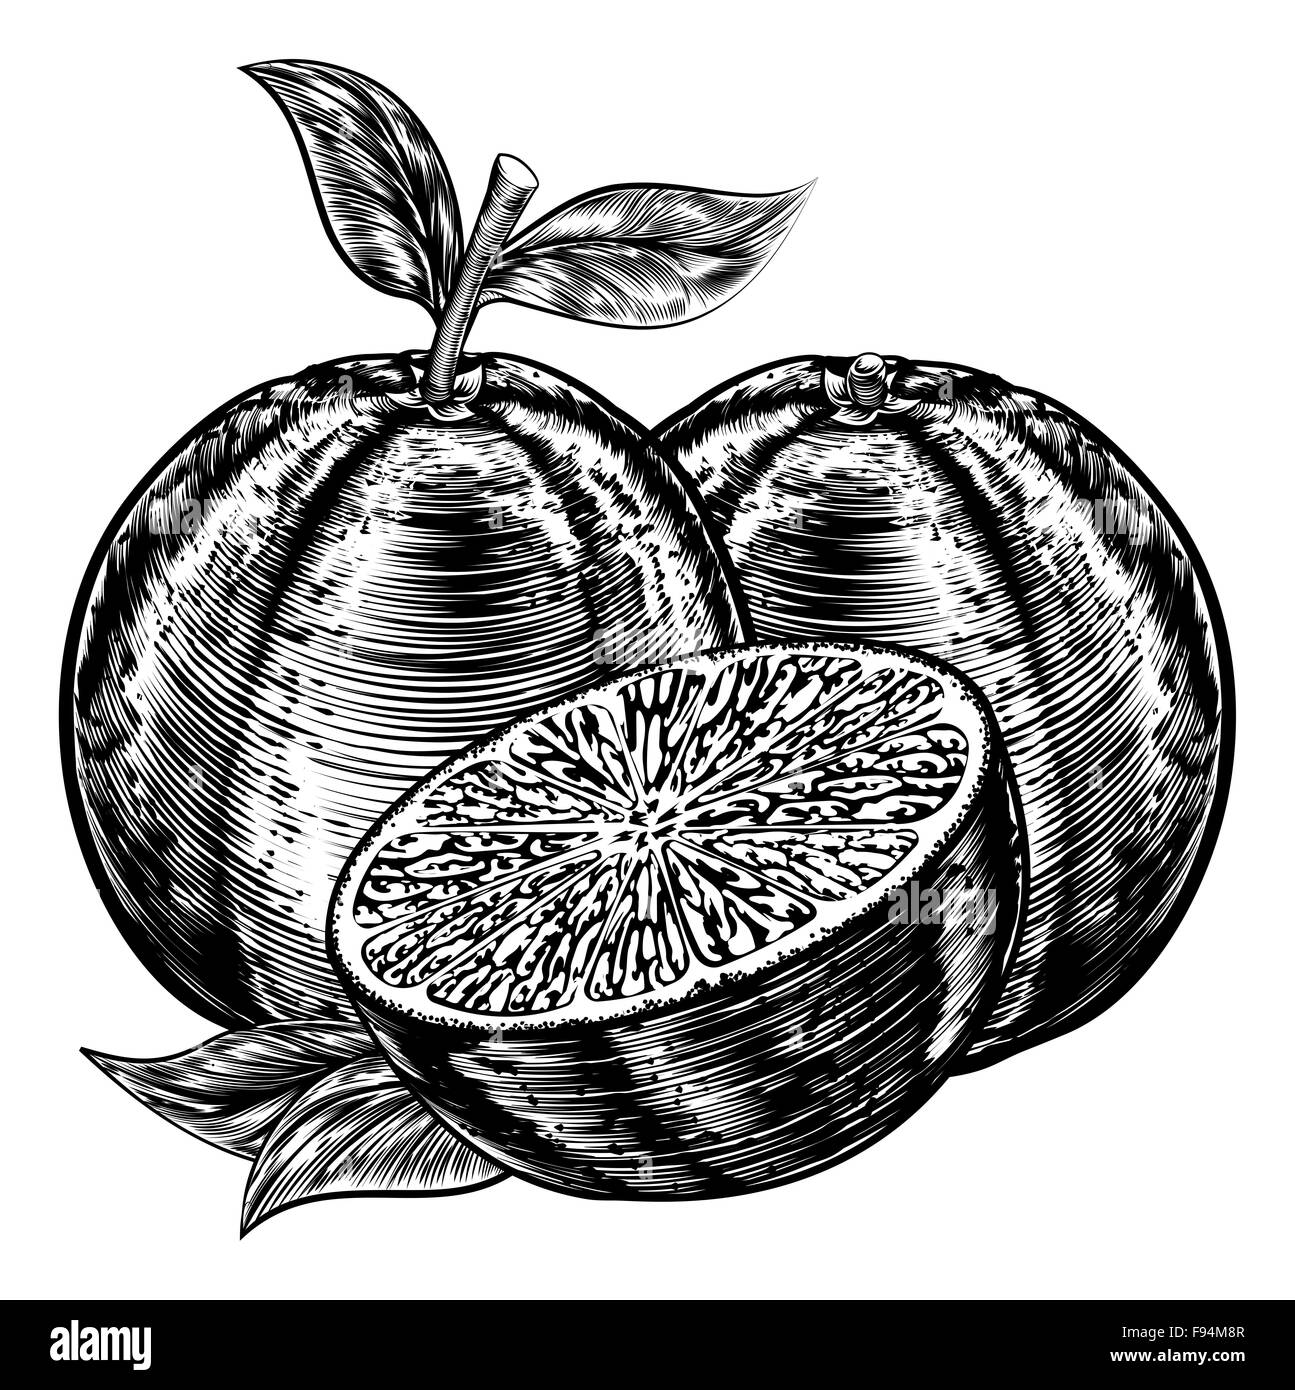 An original illustration of sliced oranges fruit in a vintage woodcut or woodblock style - Stock Image